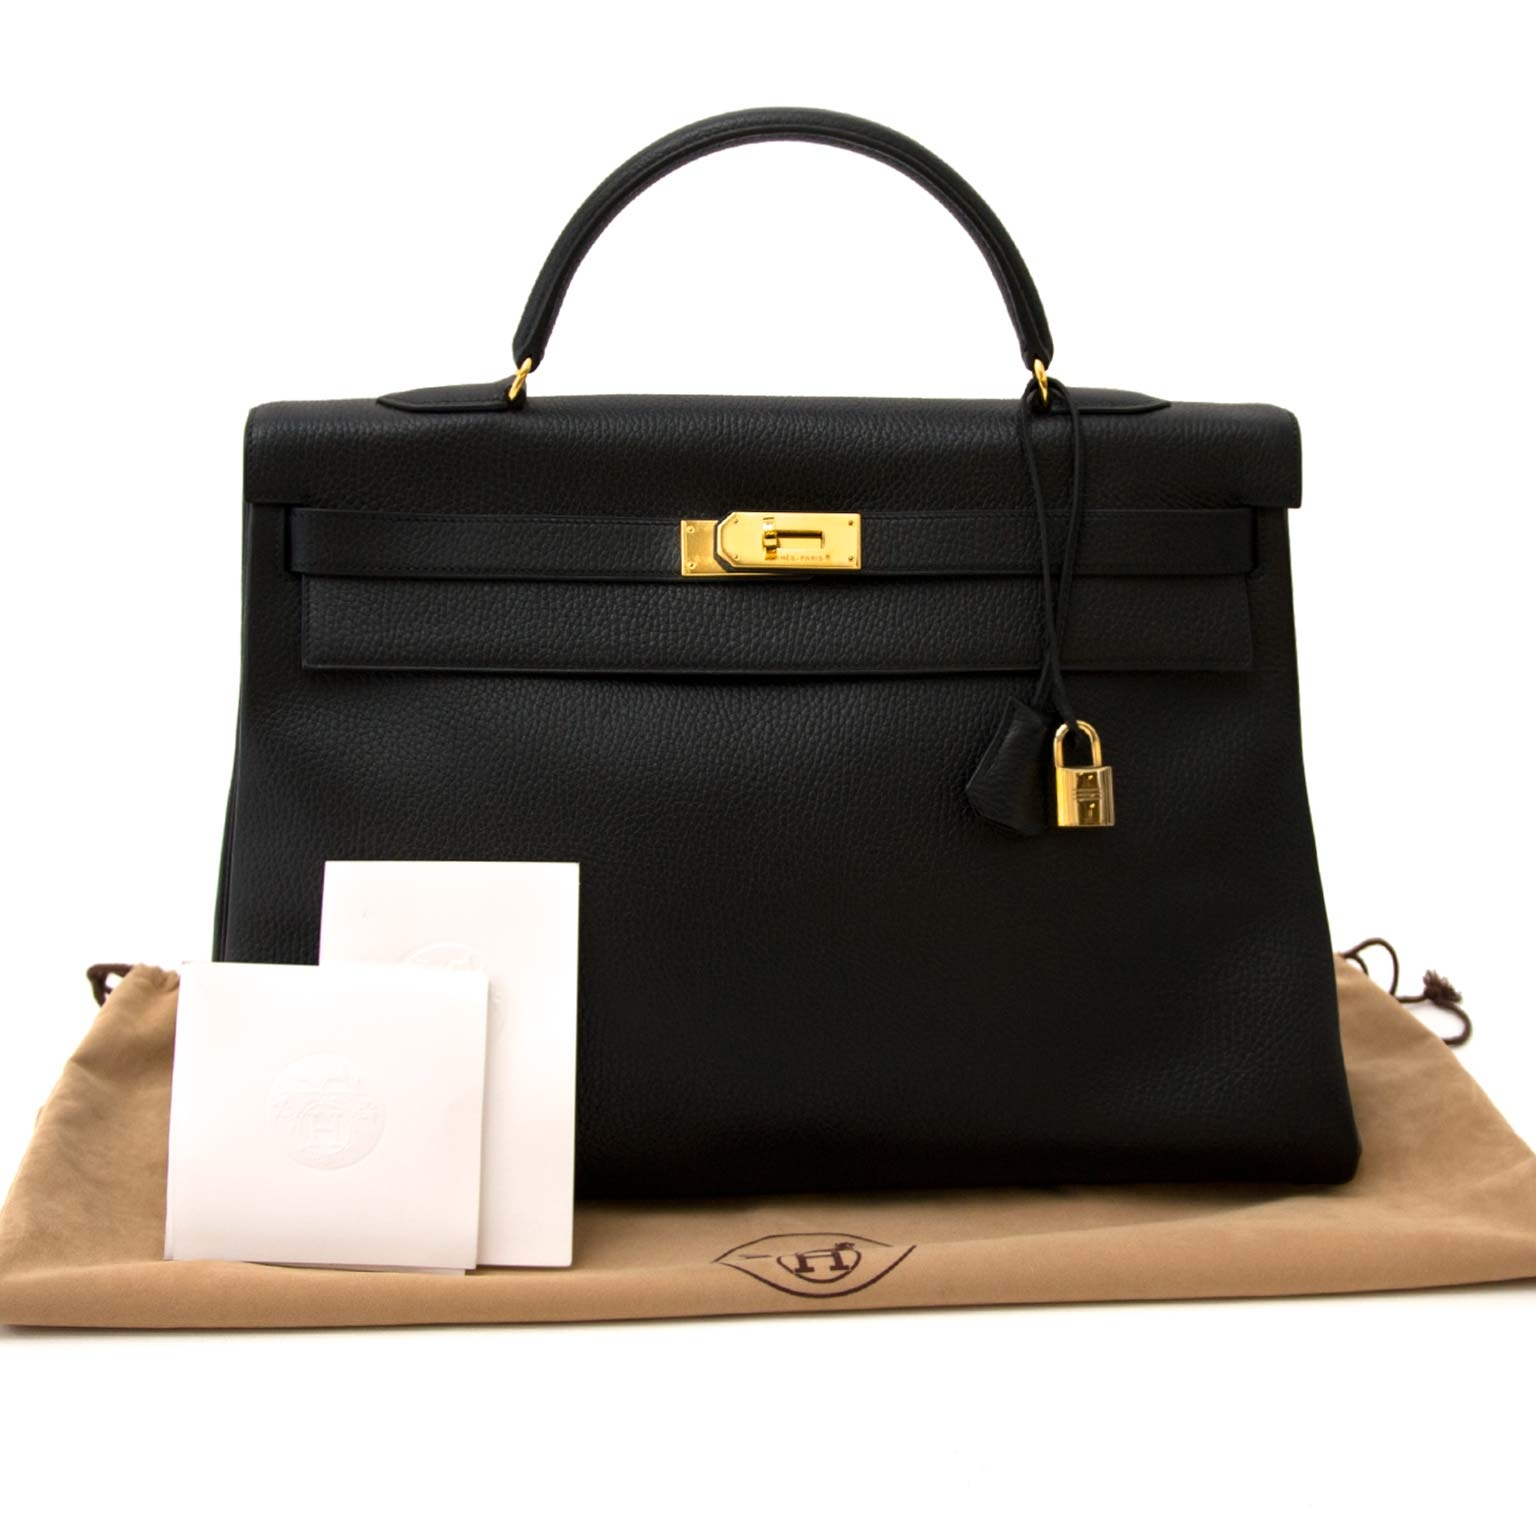 Hermès Kelly 40cm Black Veau Grainee Ardennes GHW for the best price at Labellov